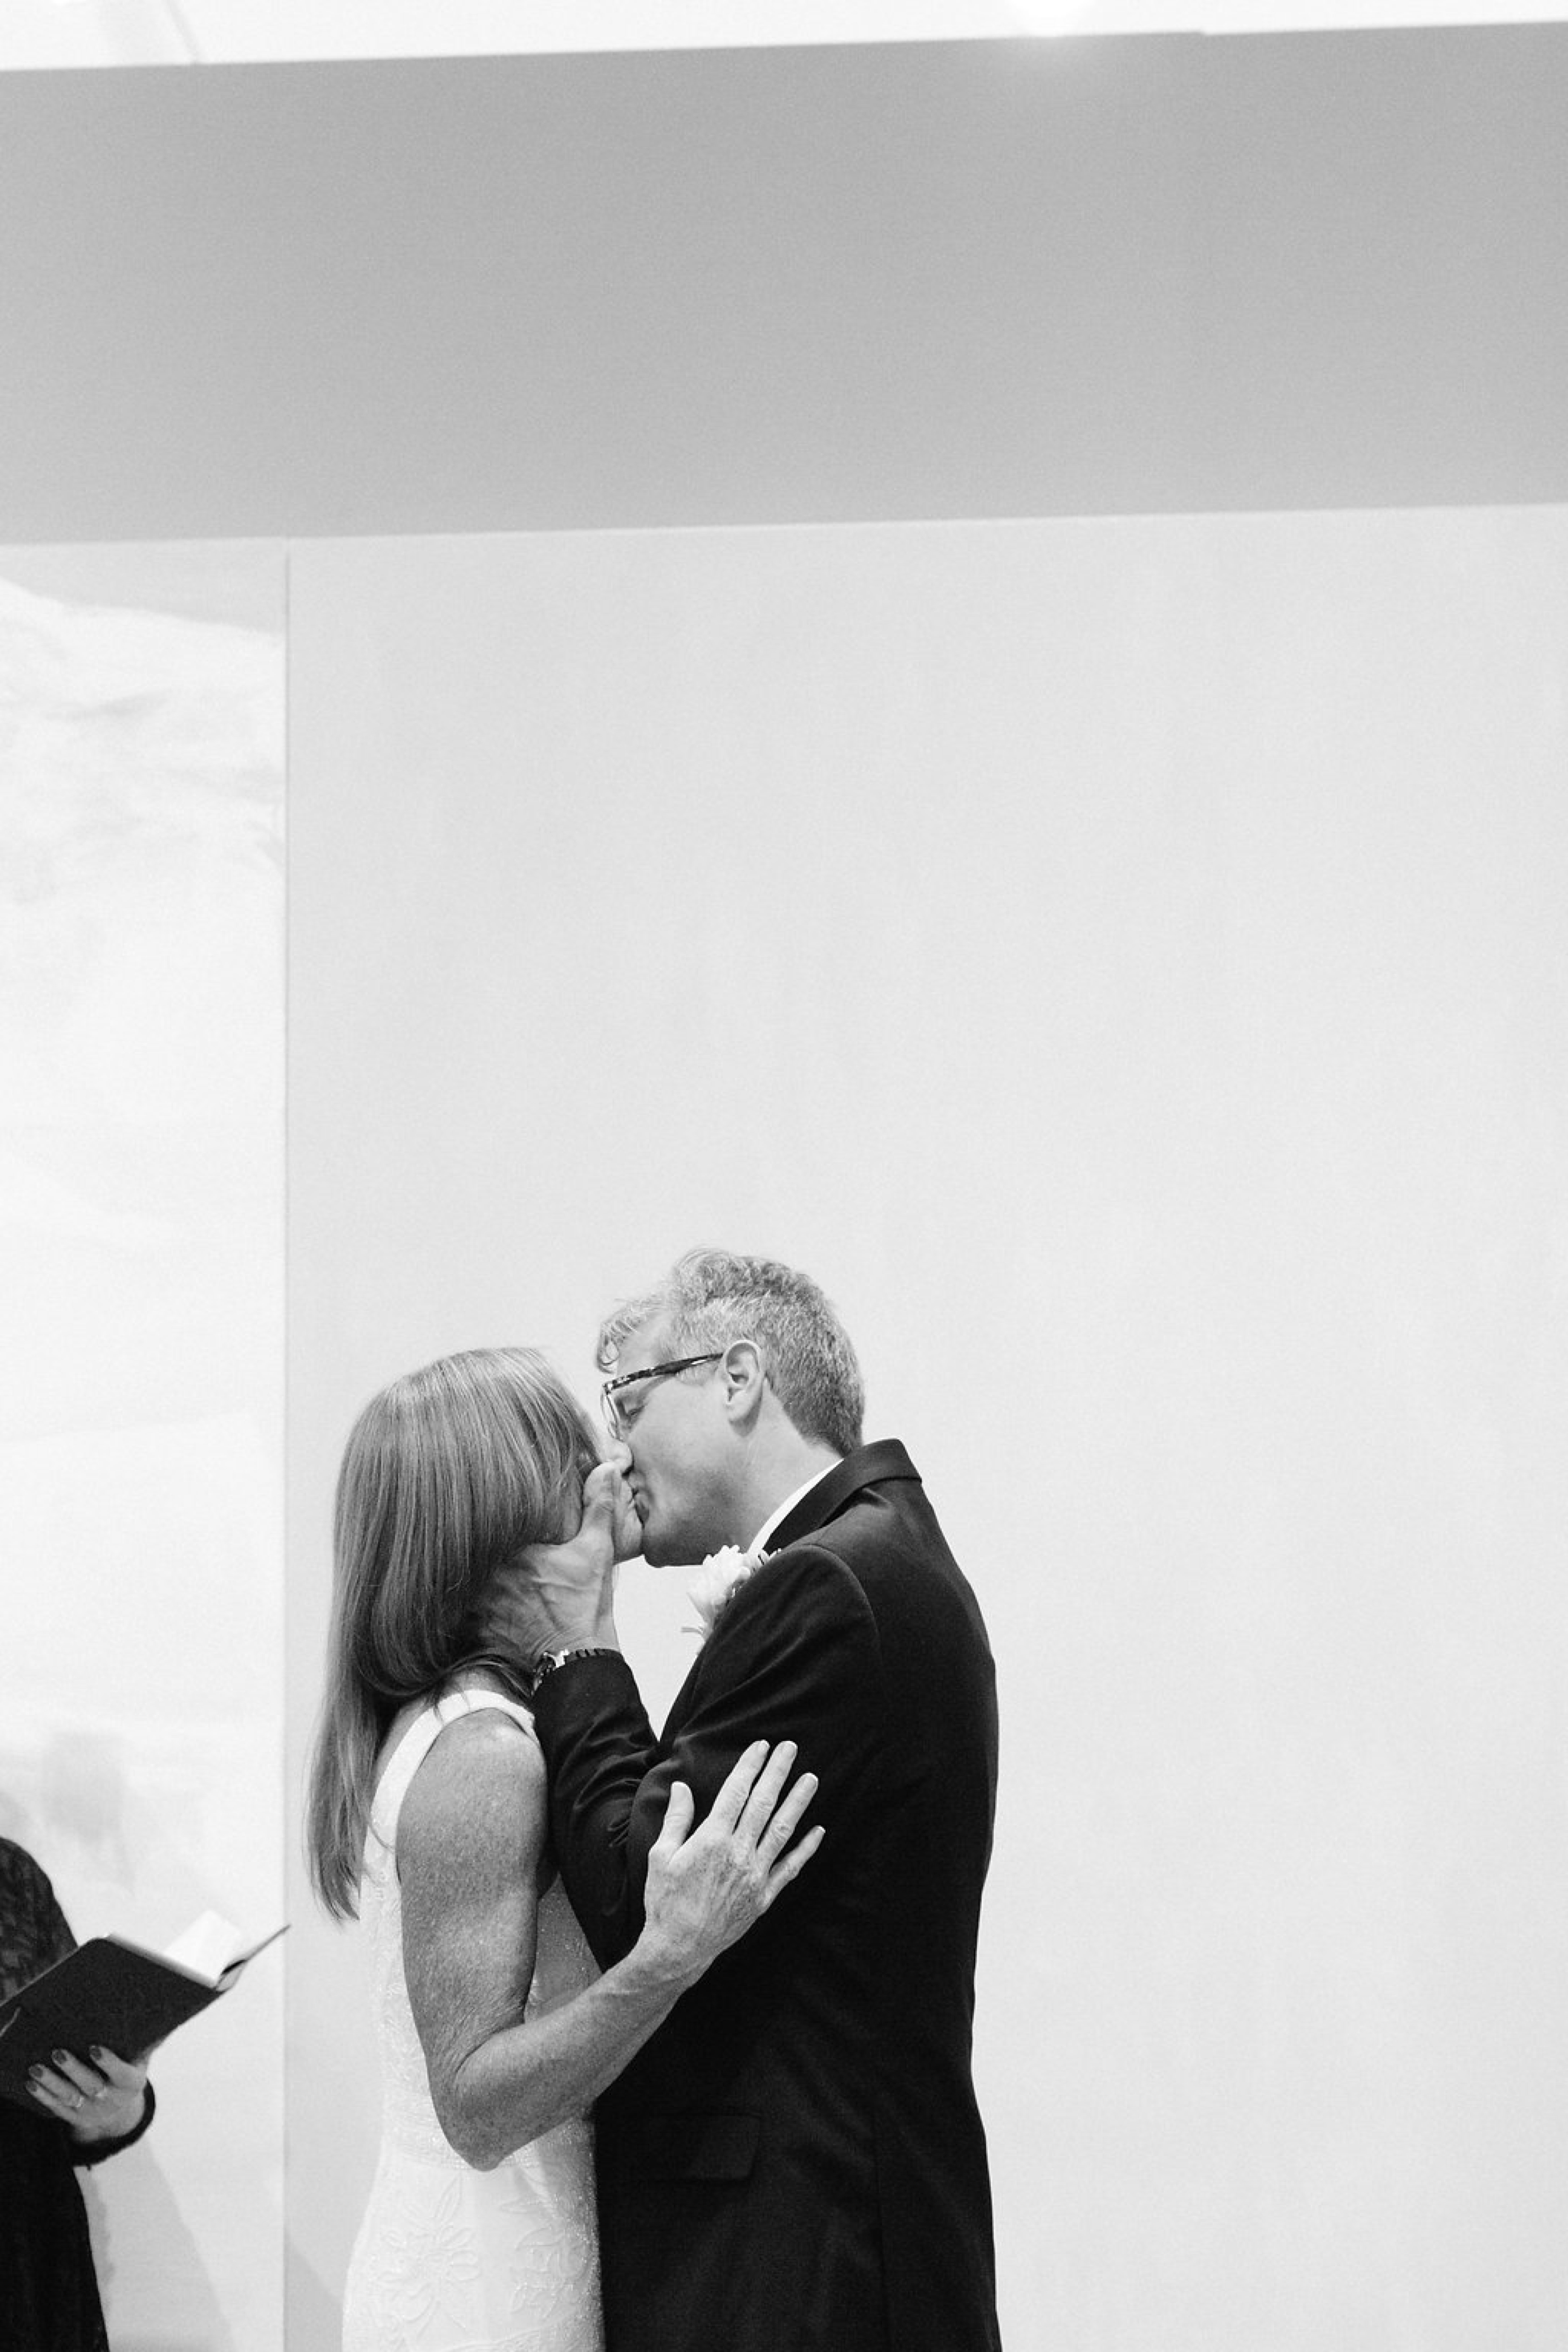 allegra_anderson_photography_connecticut_wedding_photographer_new_britain_museum_art_seymour_2016355